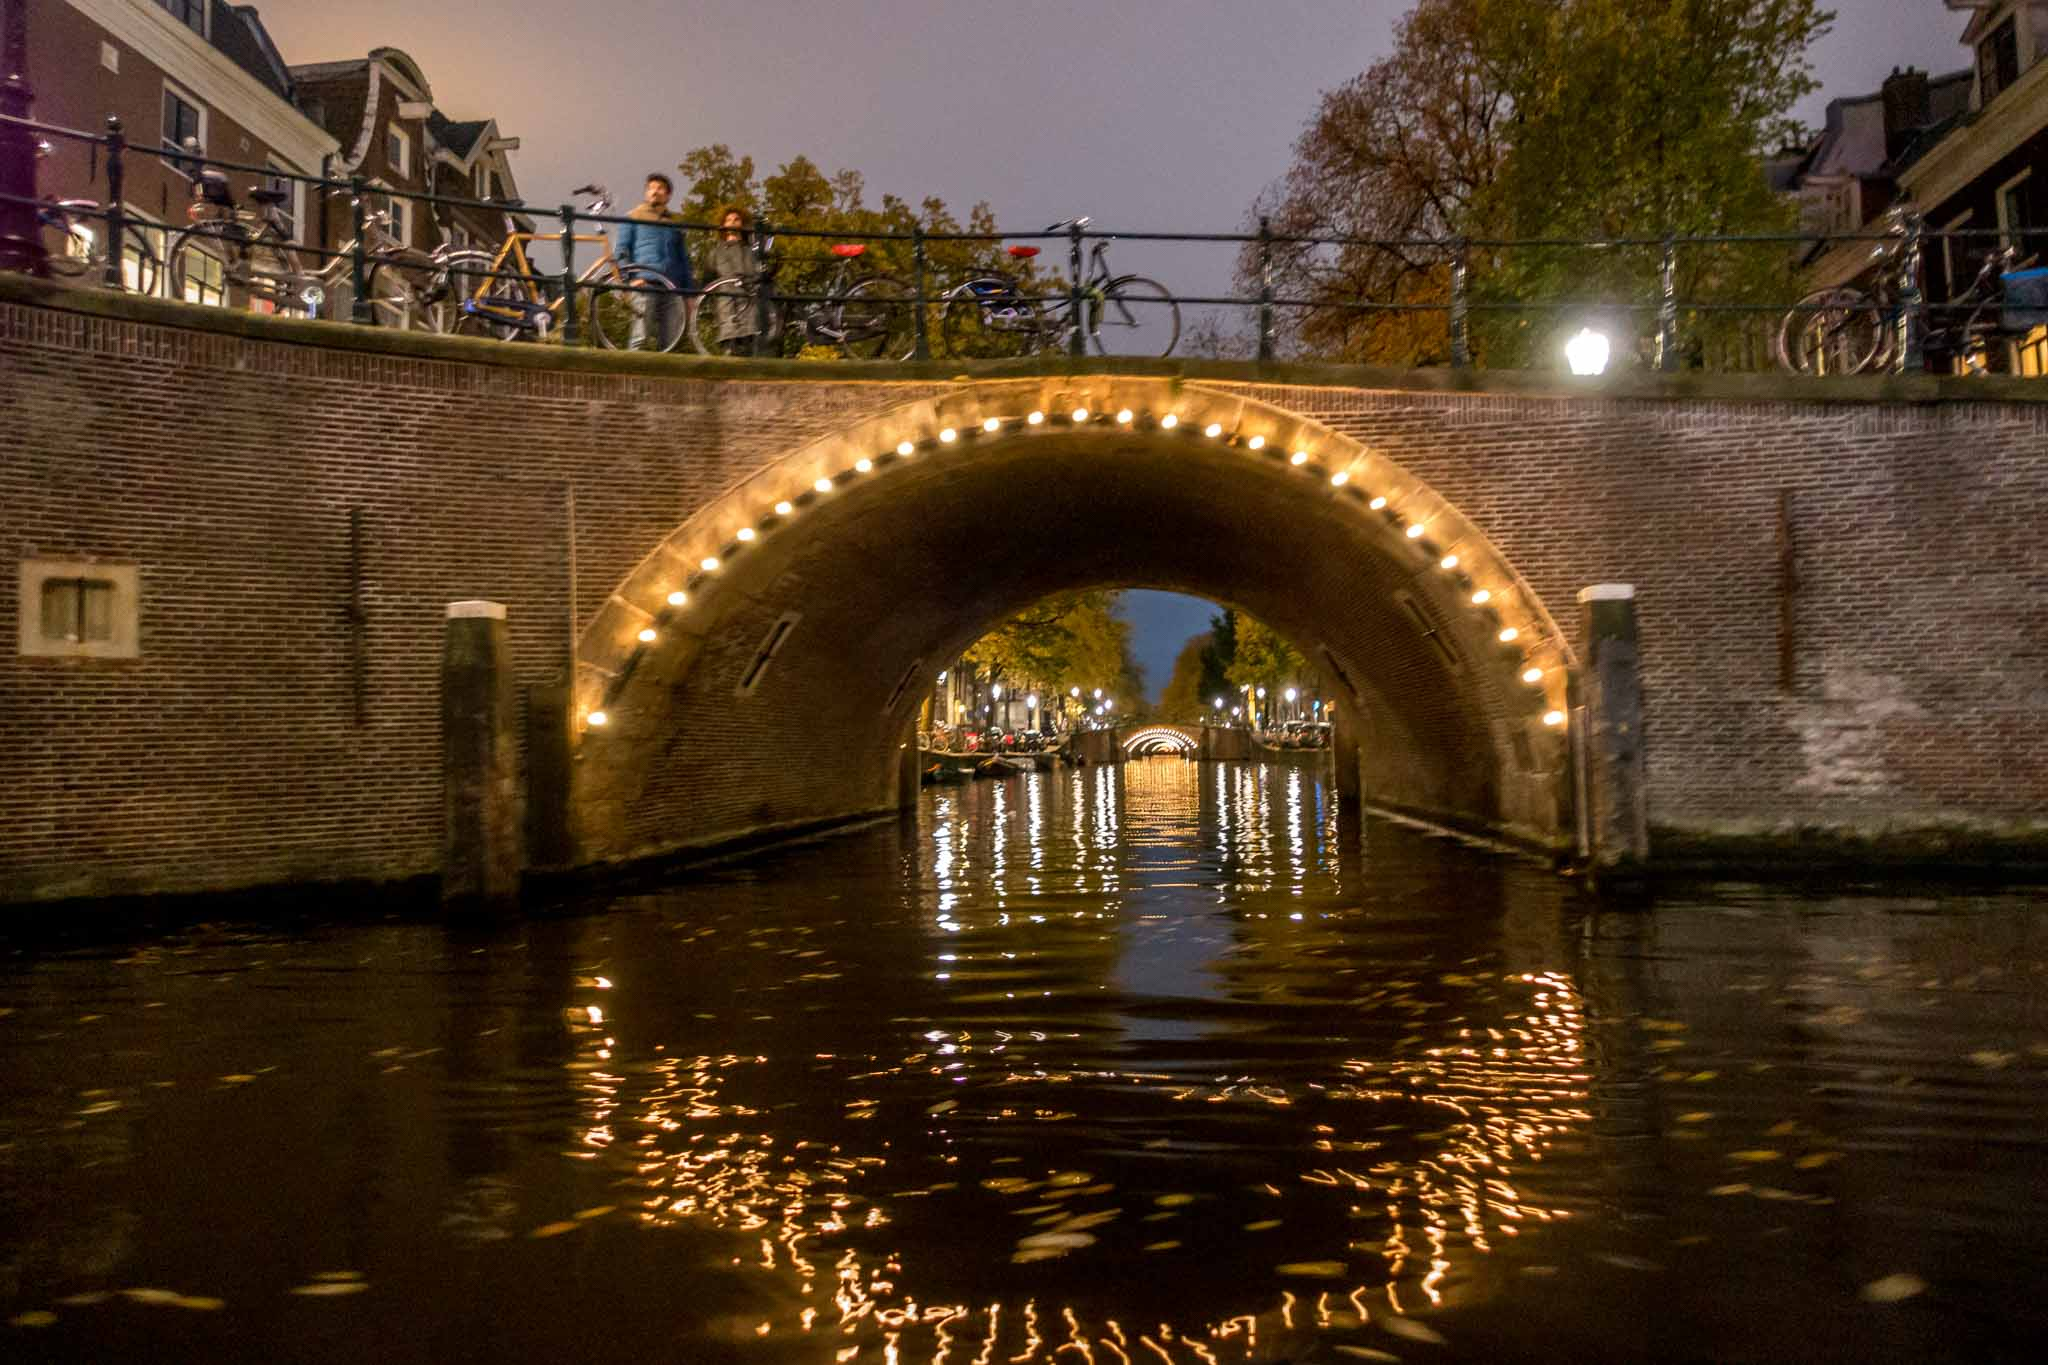 Illuminated bridge over a canal at night